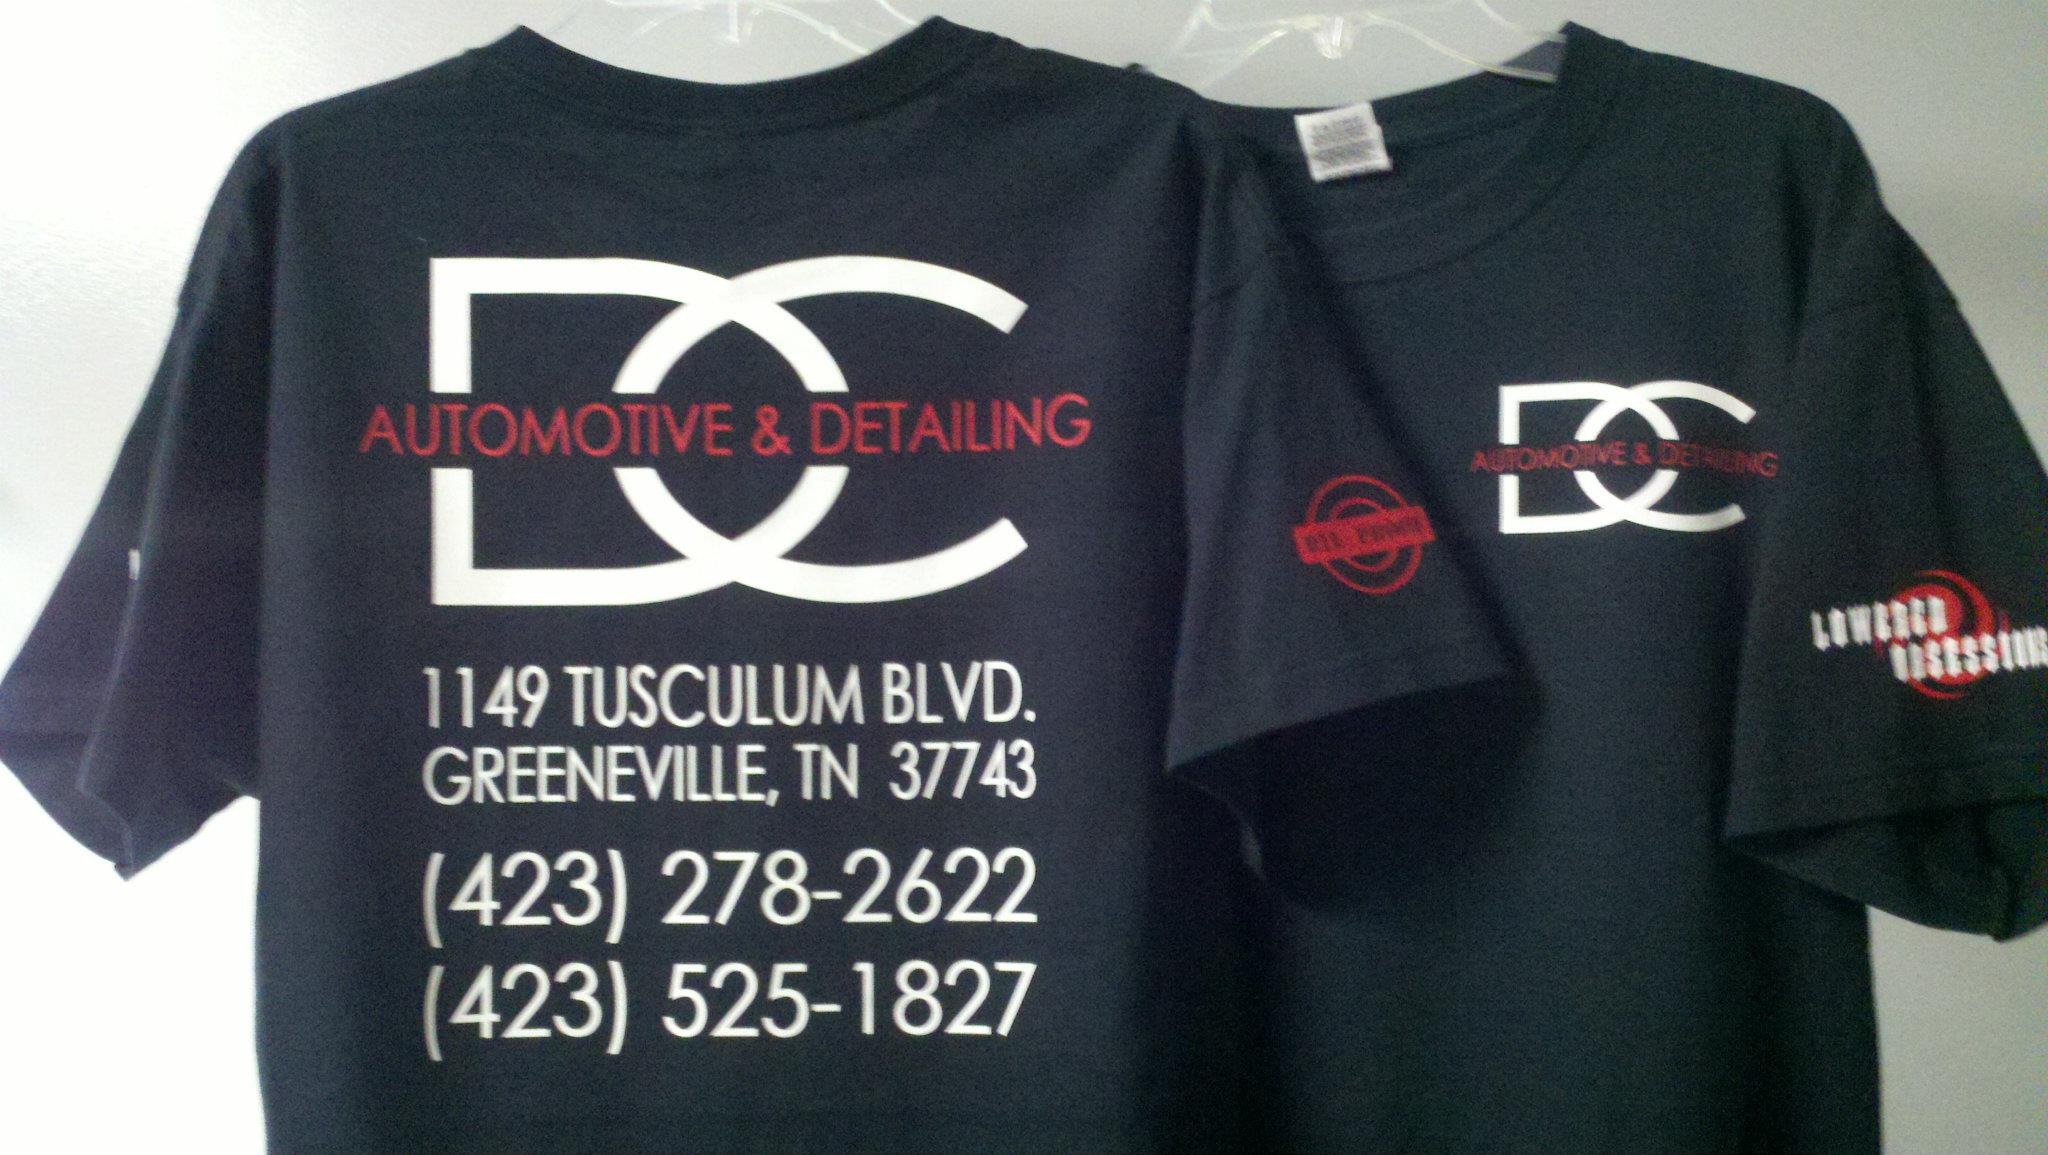 DC Automotive & Detailing